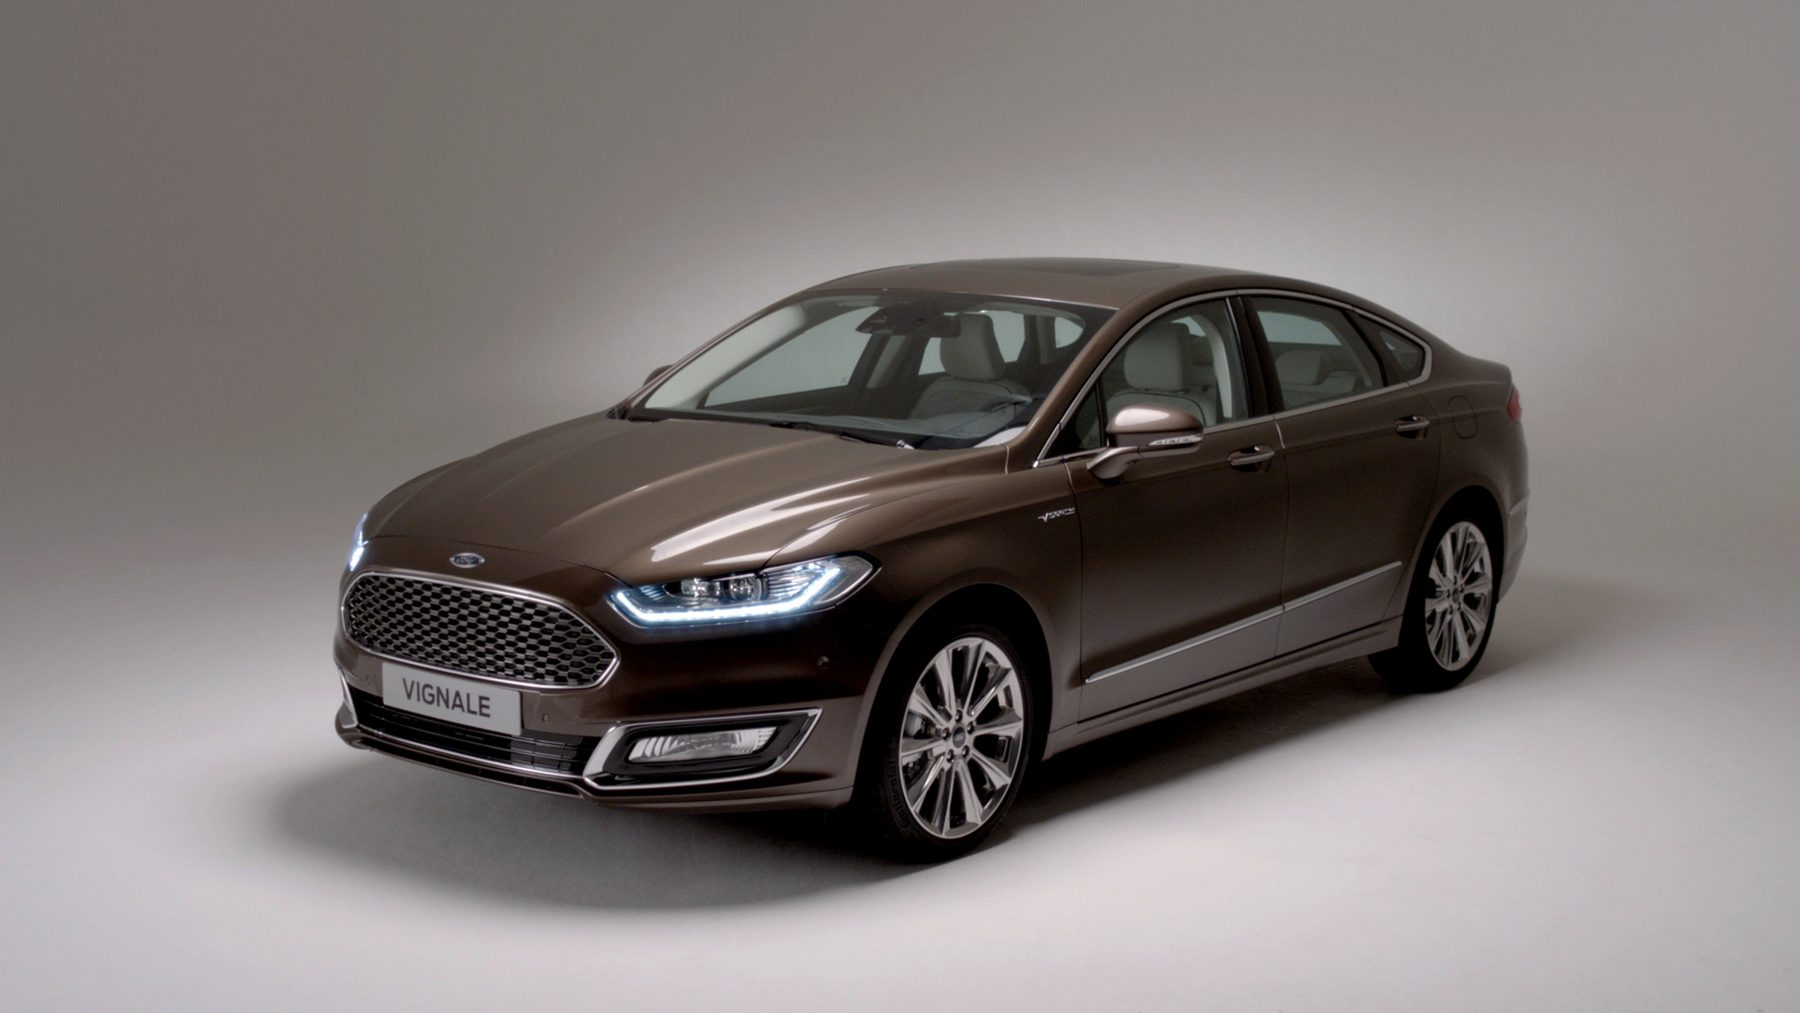 Brown Ford Mondeo Vignale